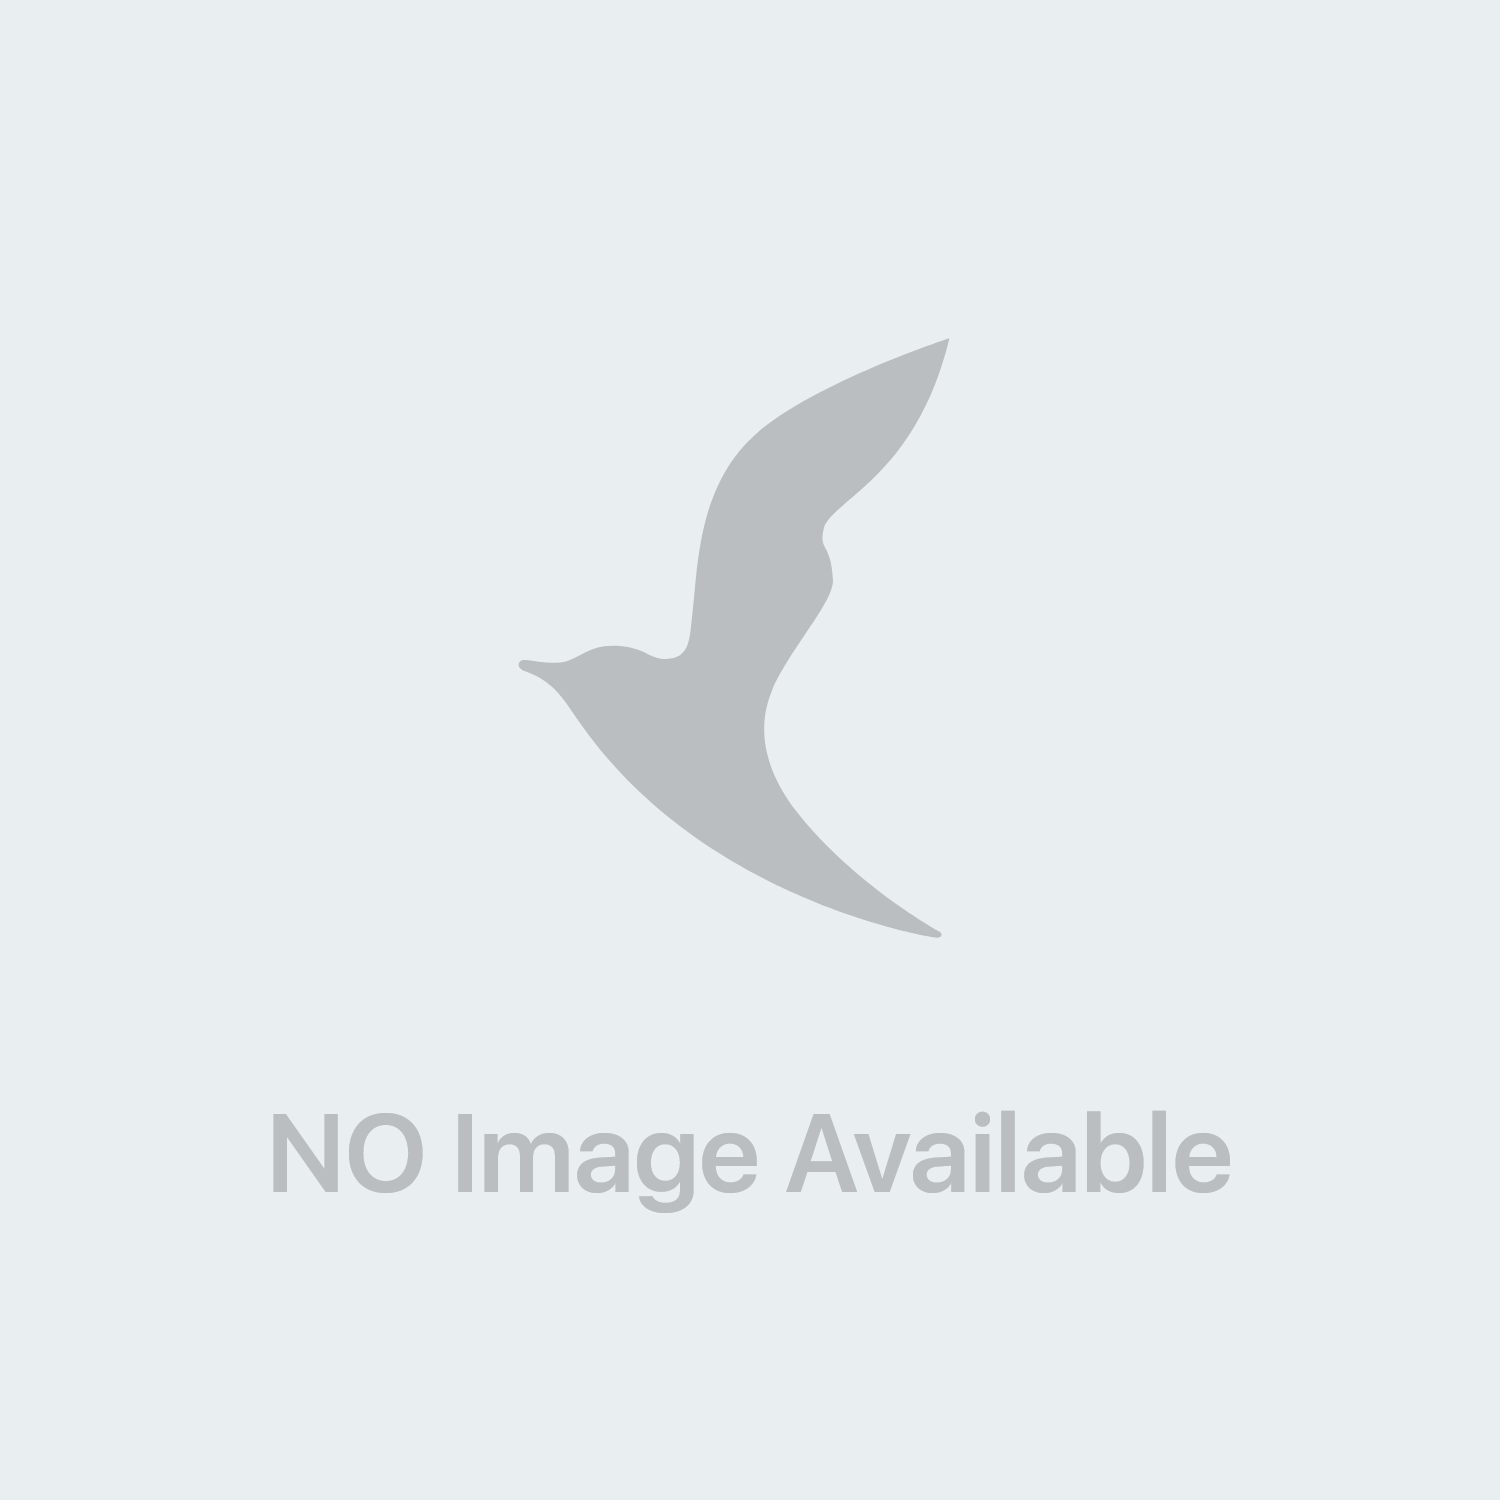 HOLOIL Tubo Gel 30ml